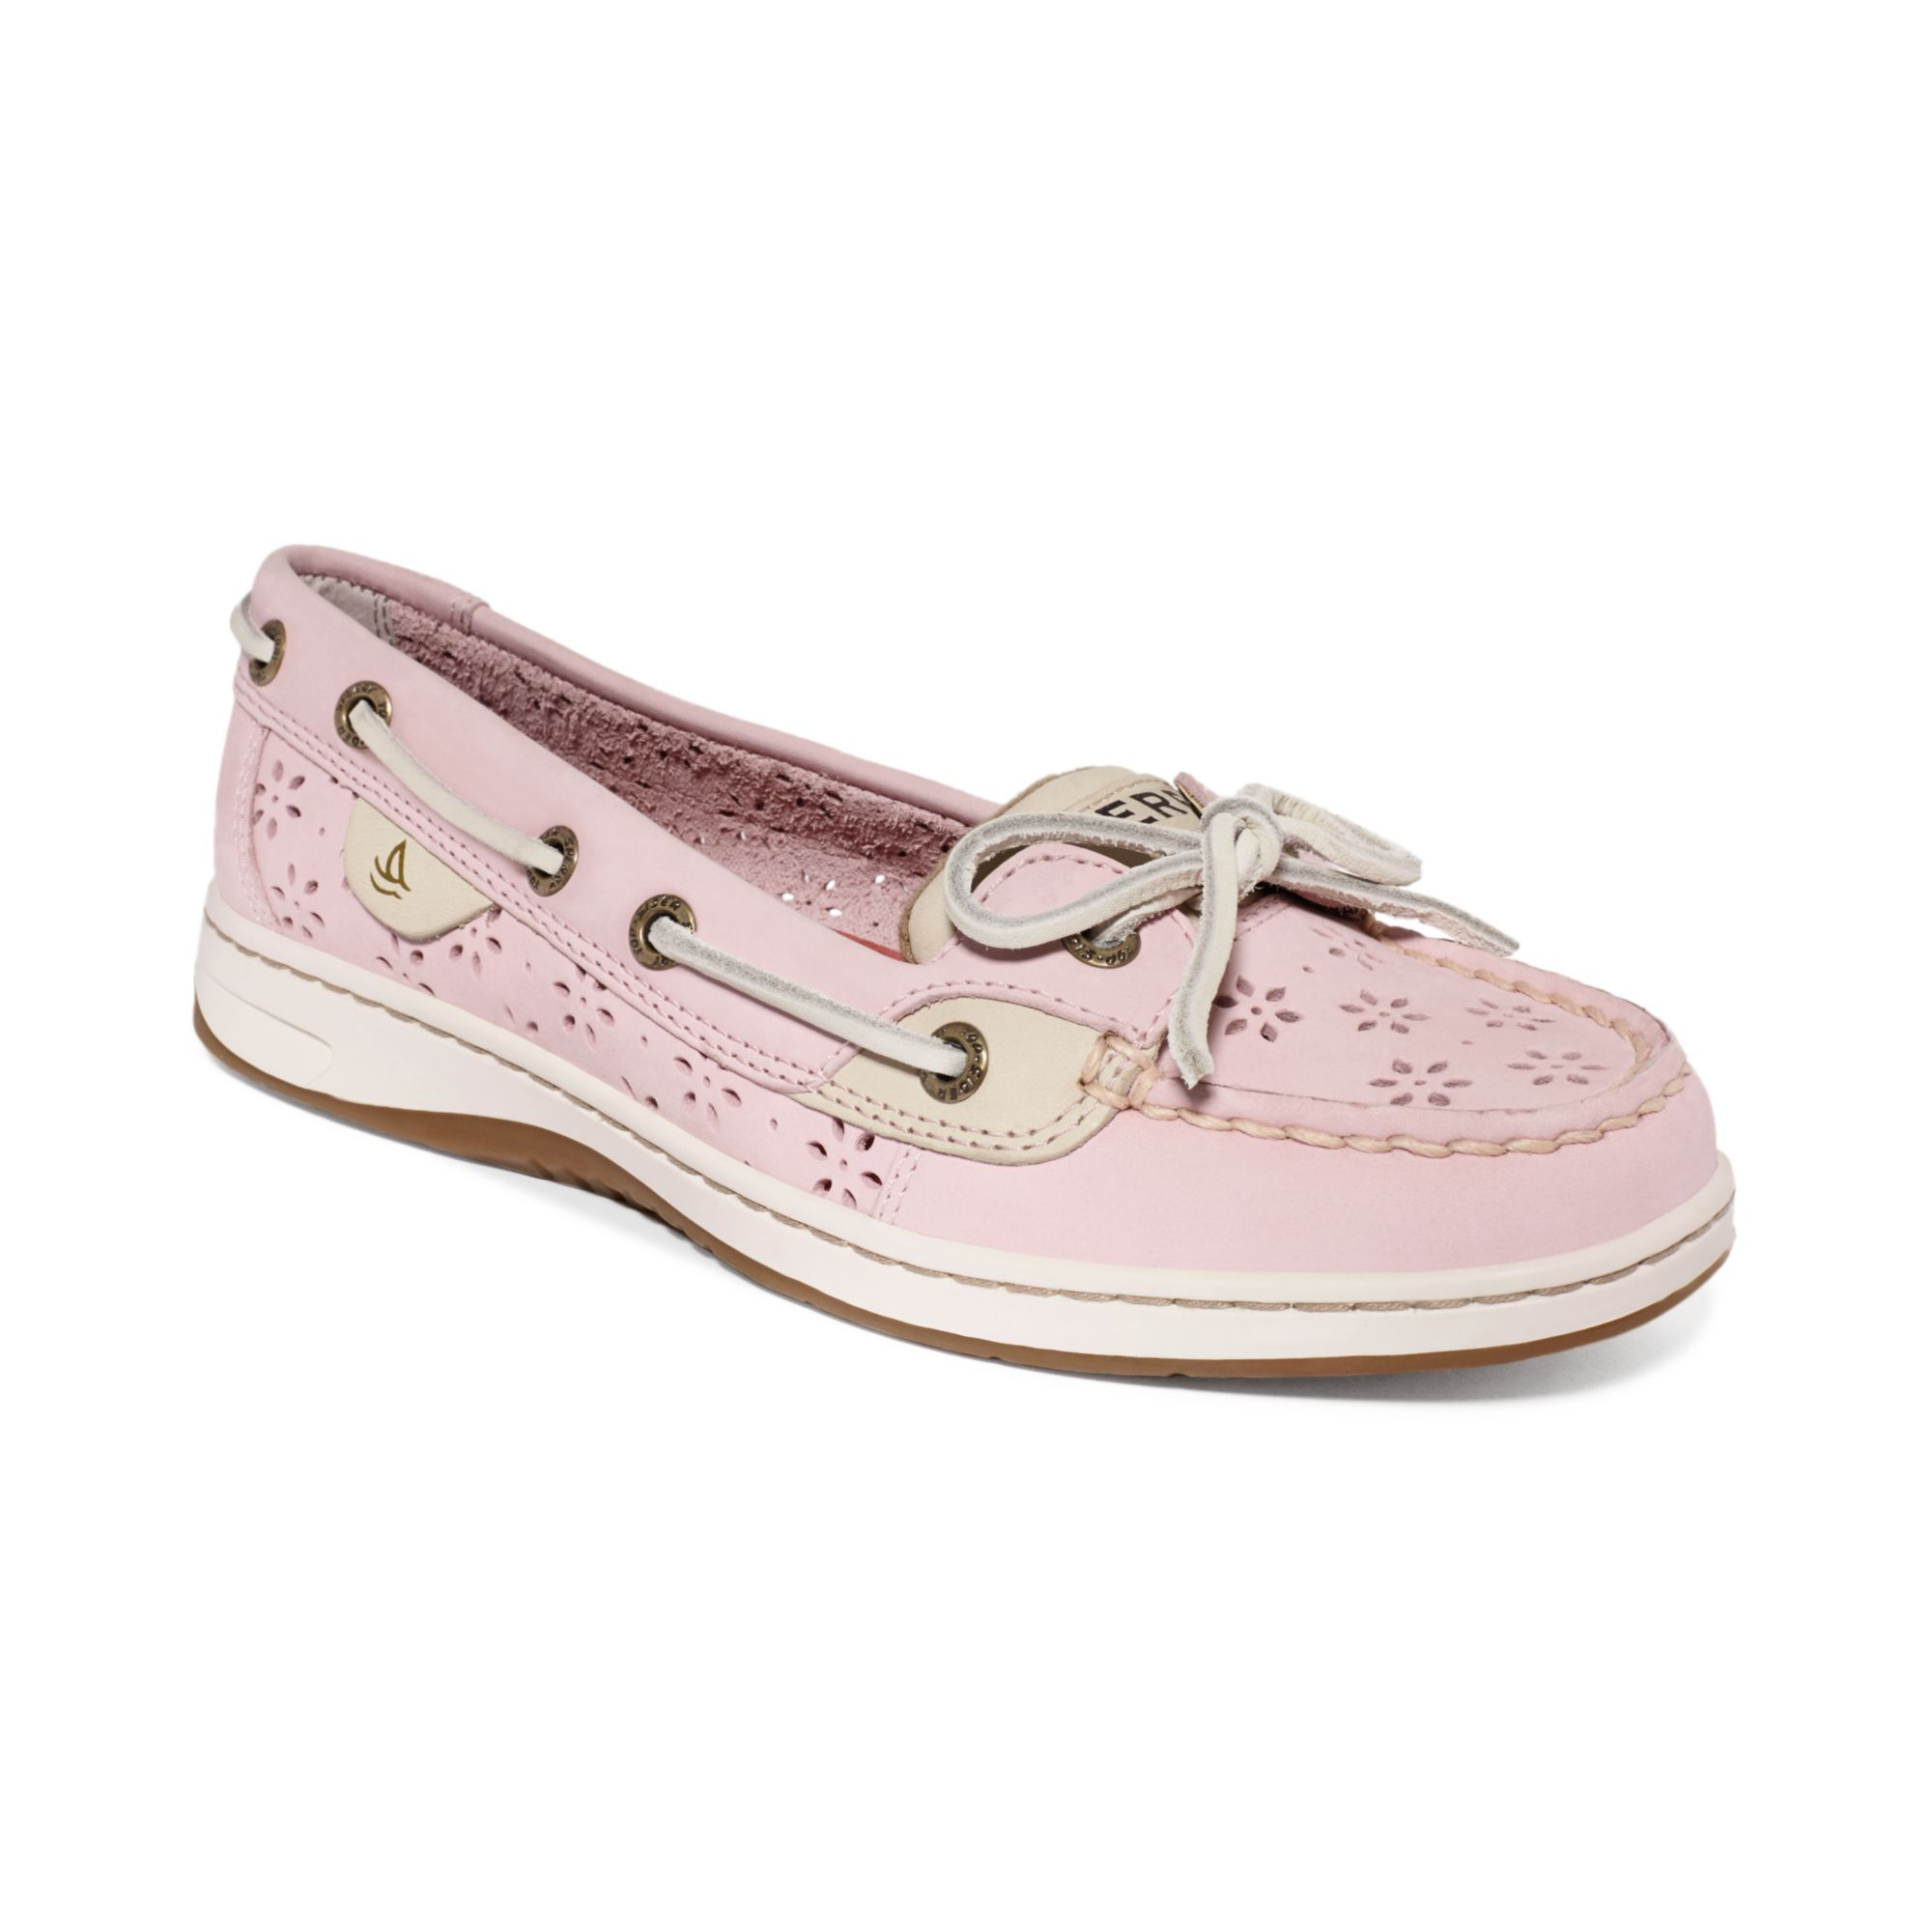 Sperry Top-Sider Womens Angelfish Boat